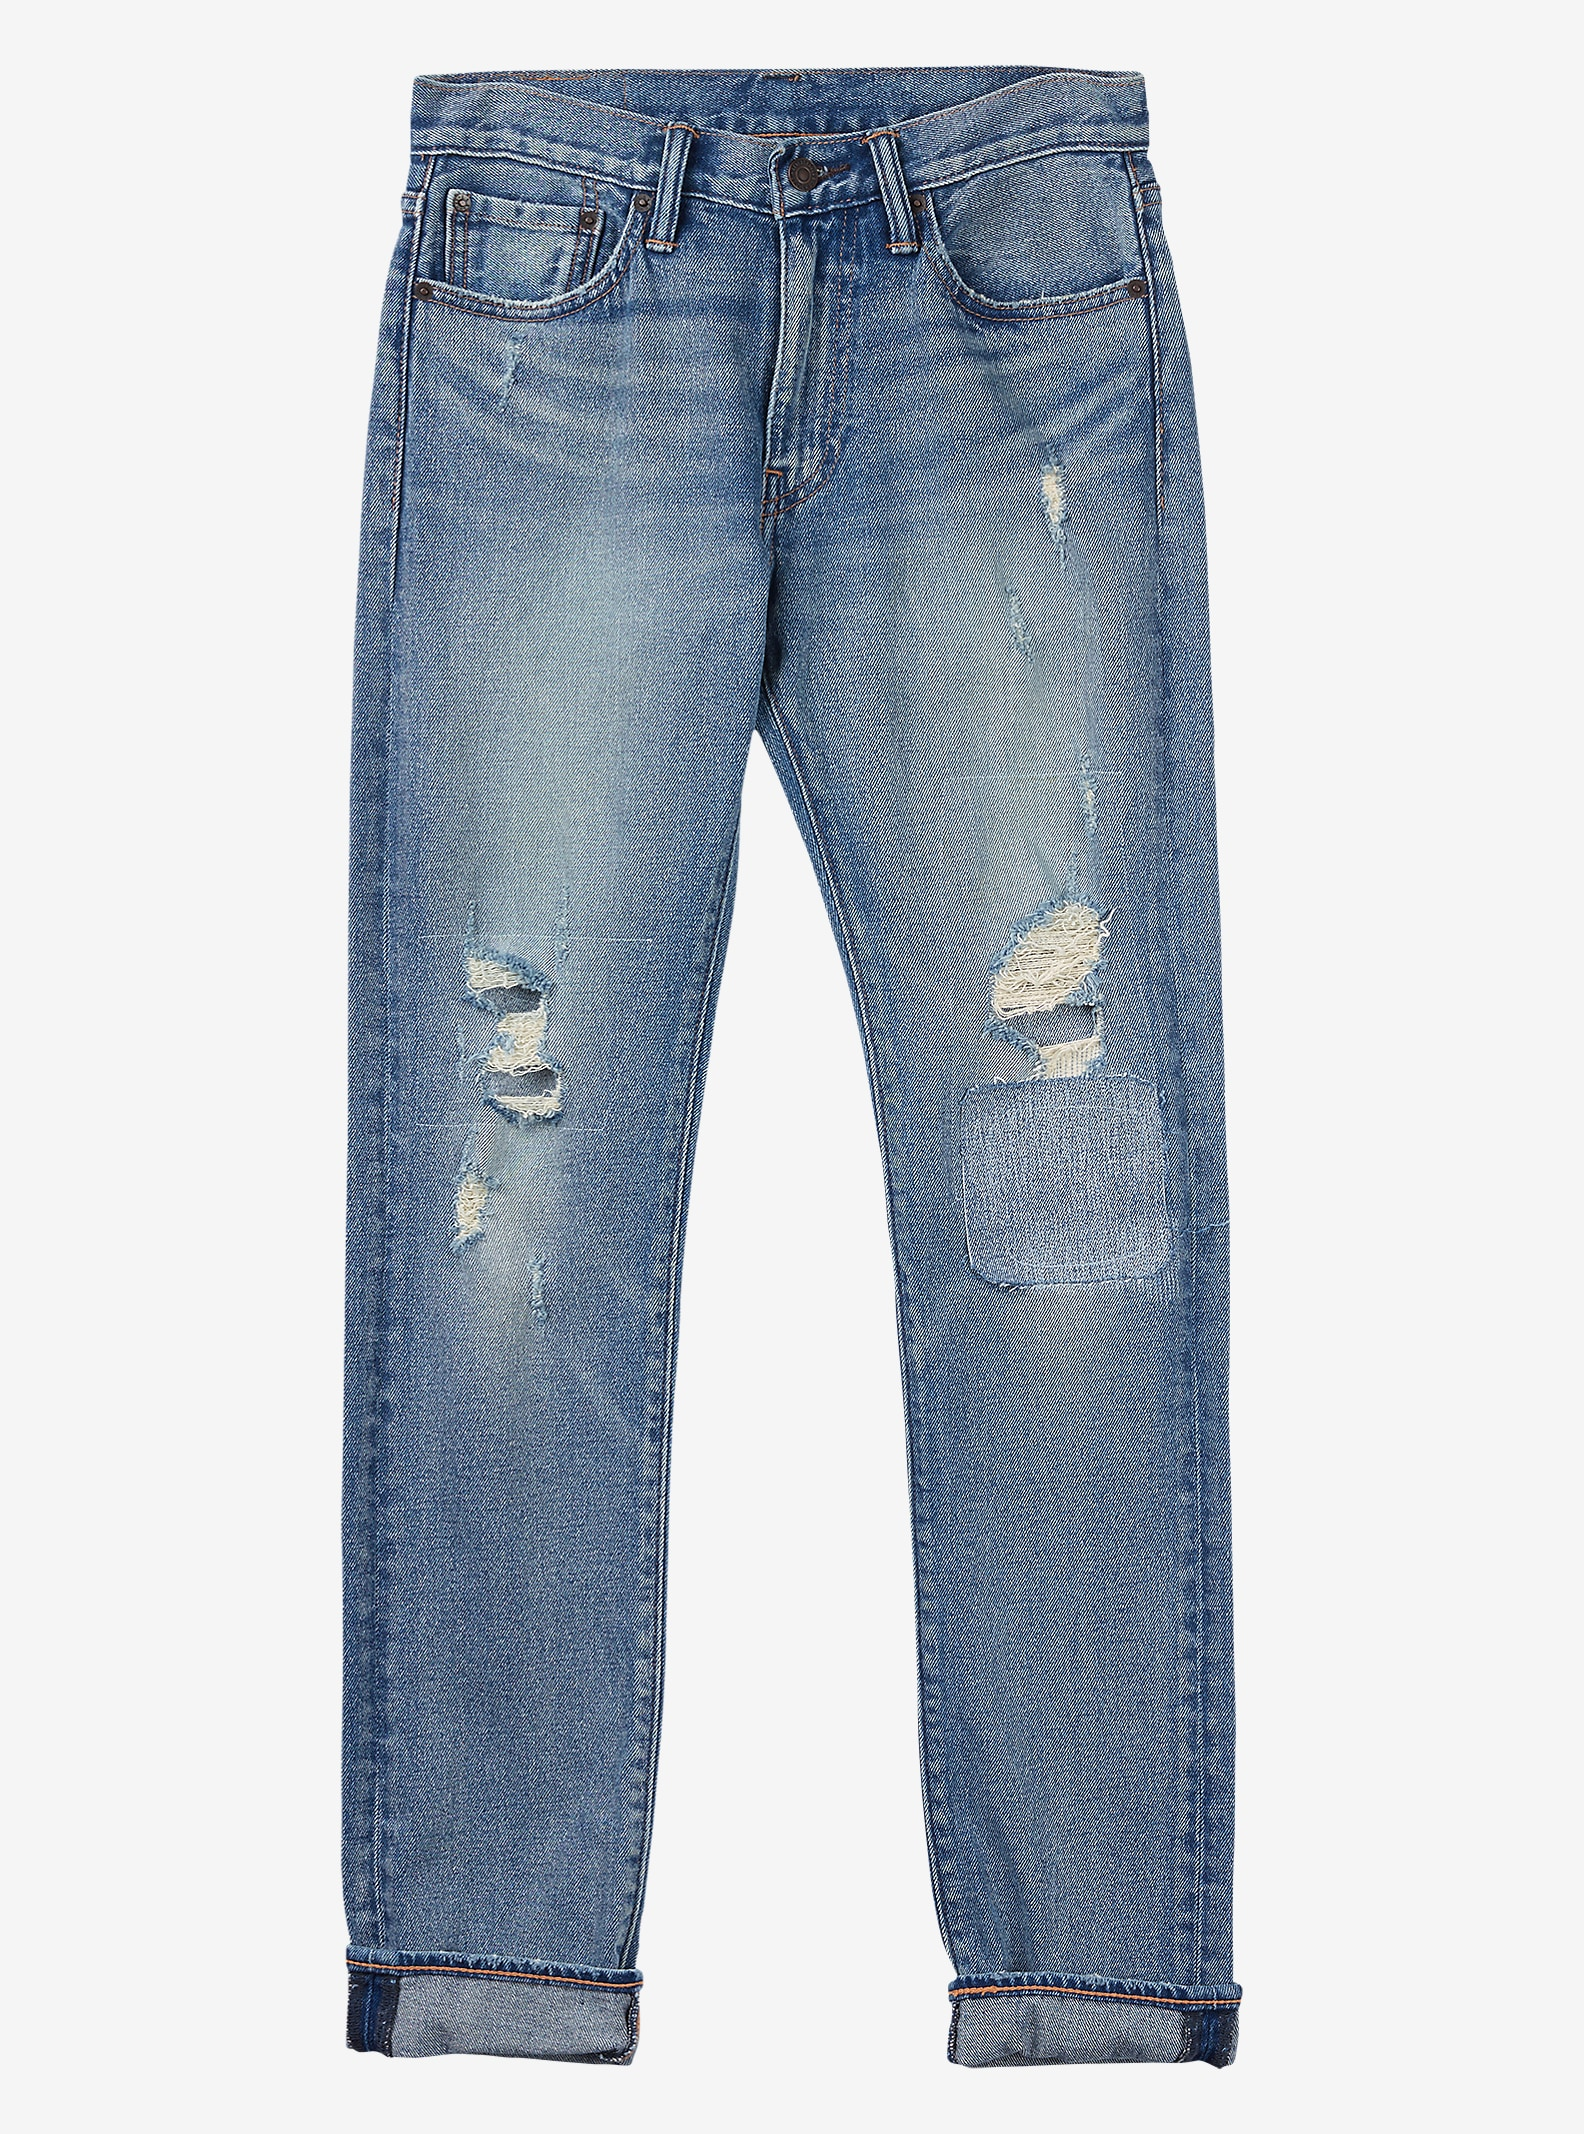 Women's Levi's® 505™C Jeans shown in Denim